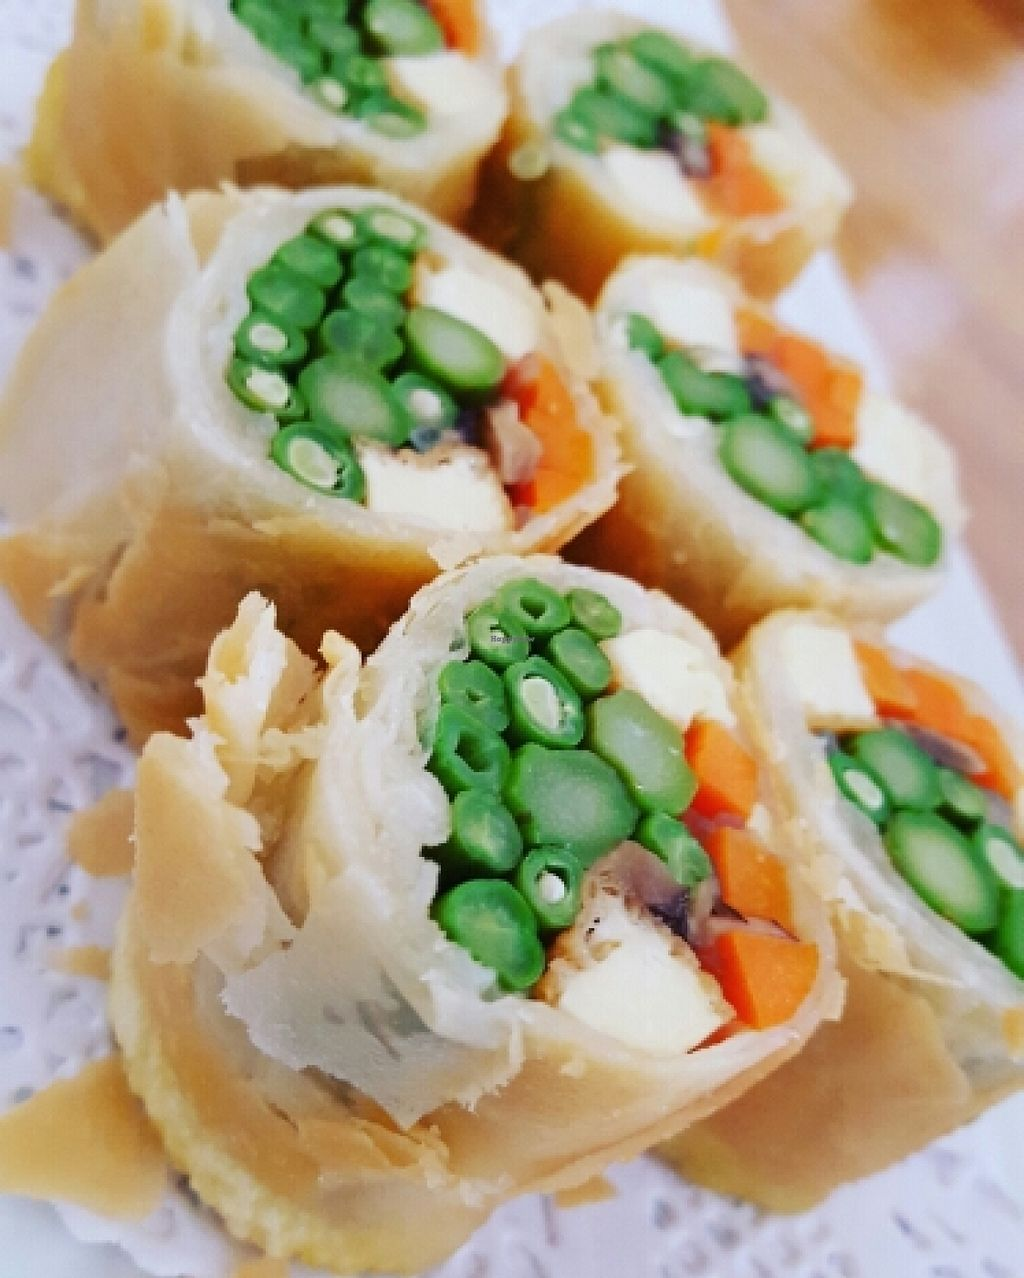 """Photo of Cha-Ya  by <a href=""""/members/profile/VeganVentures"""">VeganVentures</a> <br/>Spring Rolls  <br/> June 27, 2016  - <a href='/contact/abuse/image/1481/156332'>Report</a>"""